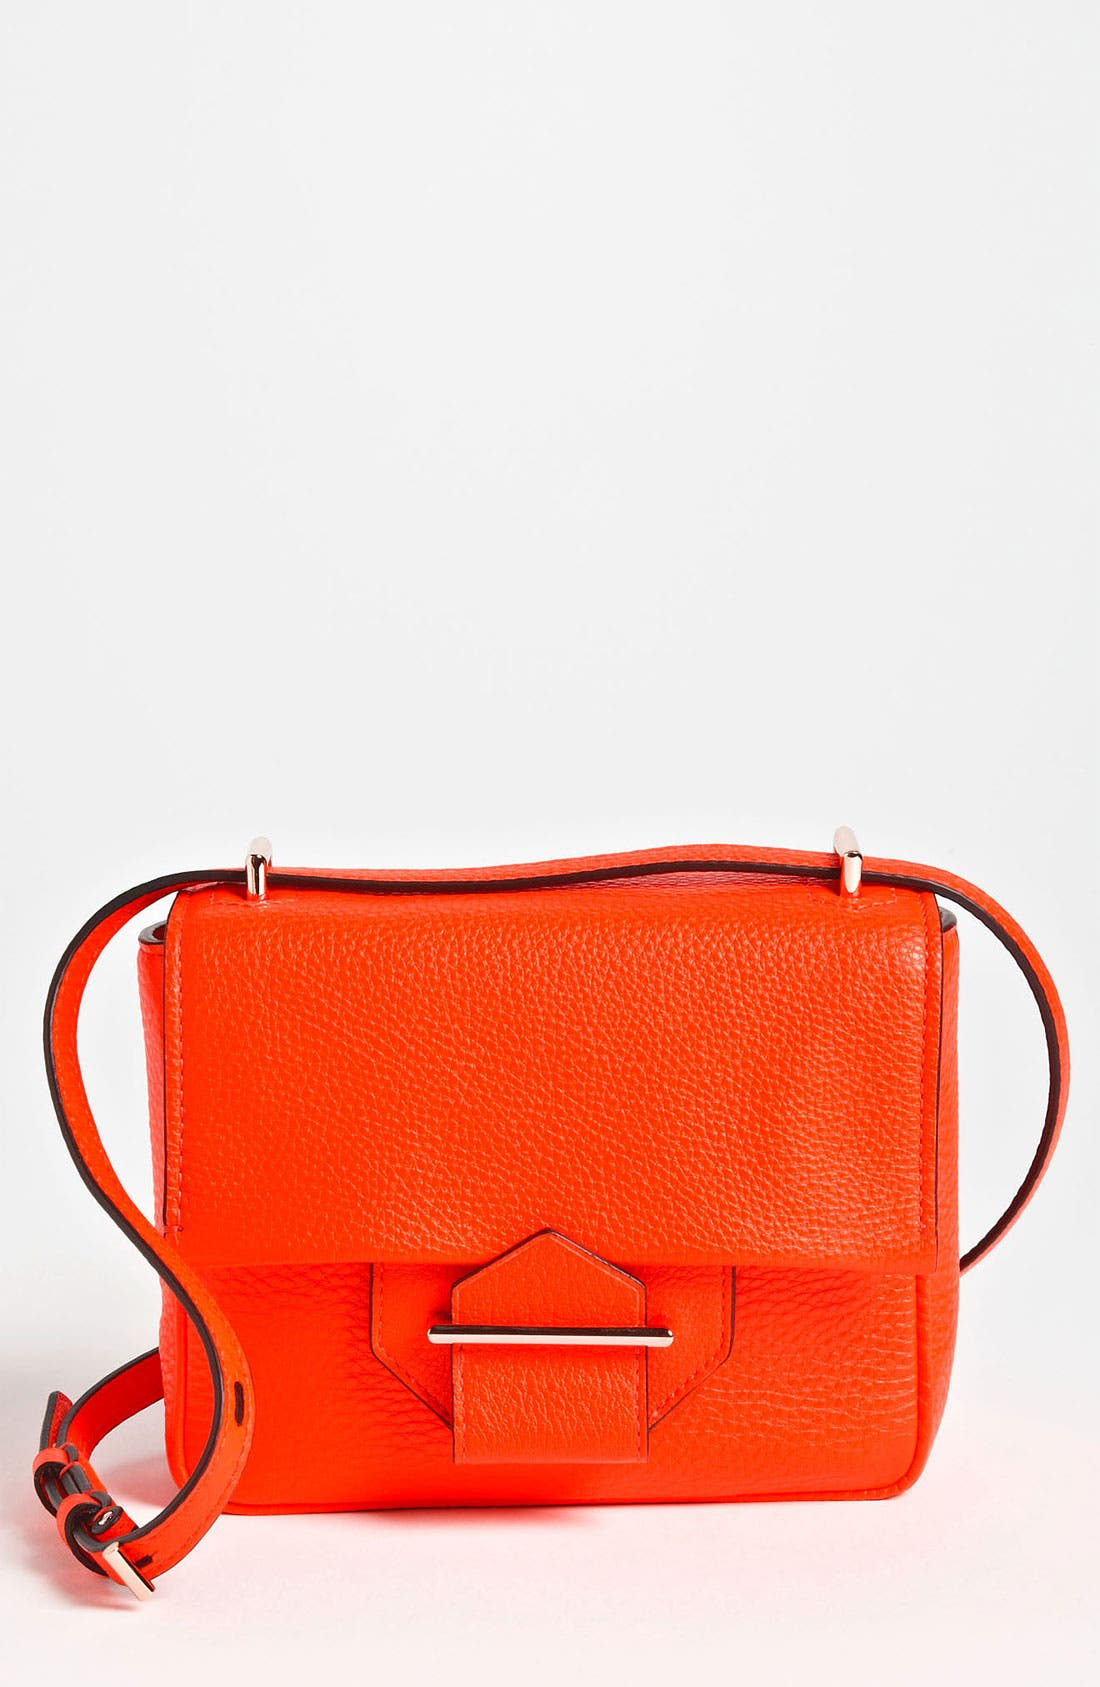 Alternate Image 1 Selected - Reed Krakoff 'Standard - Mini' Leather Shoulder Bag